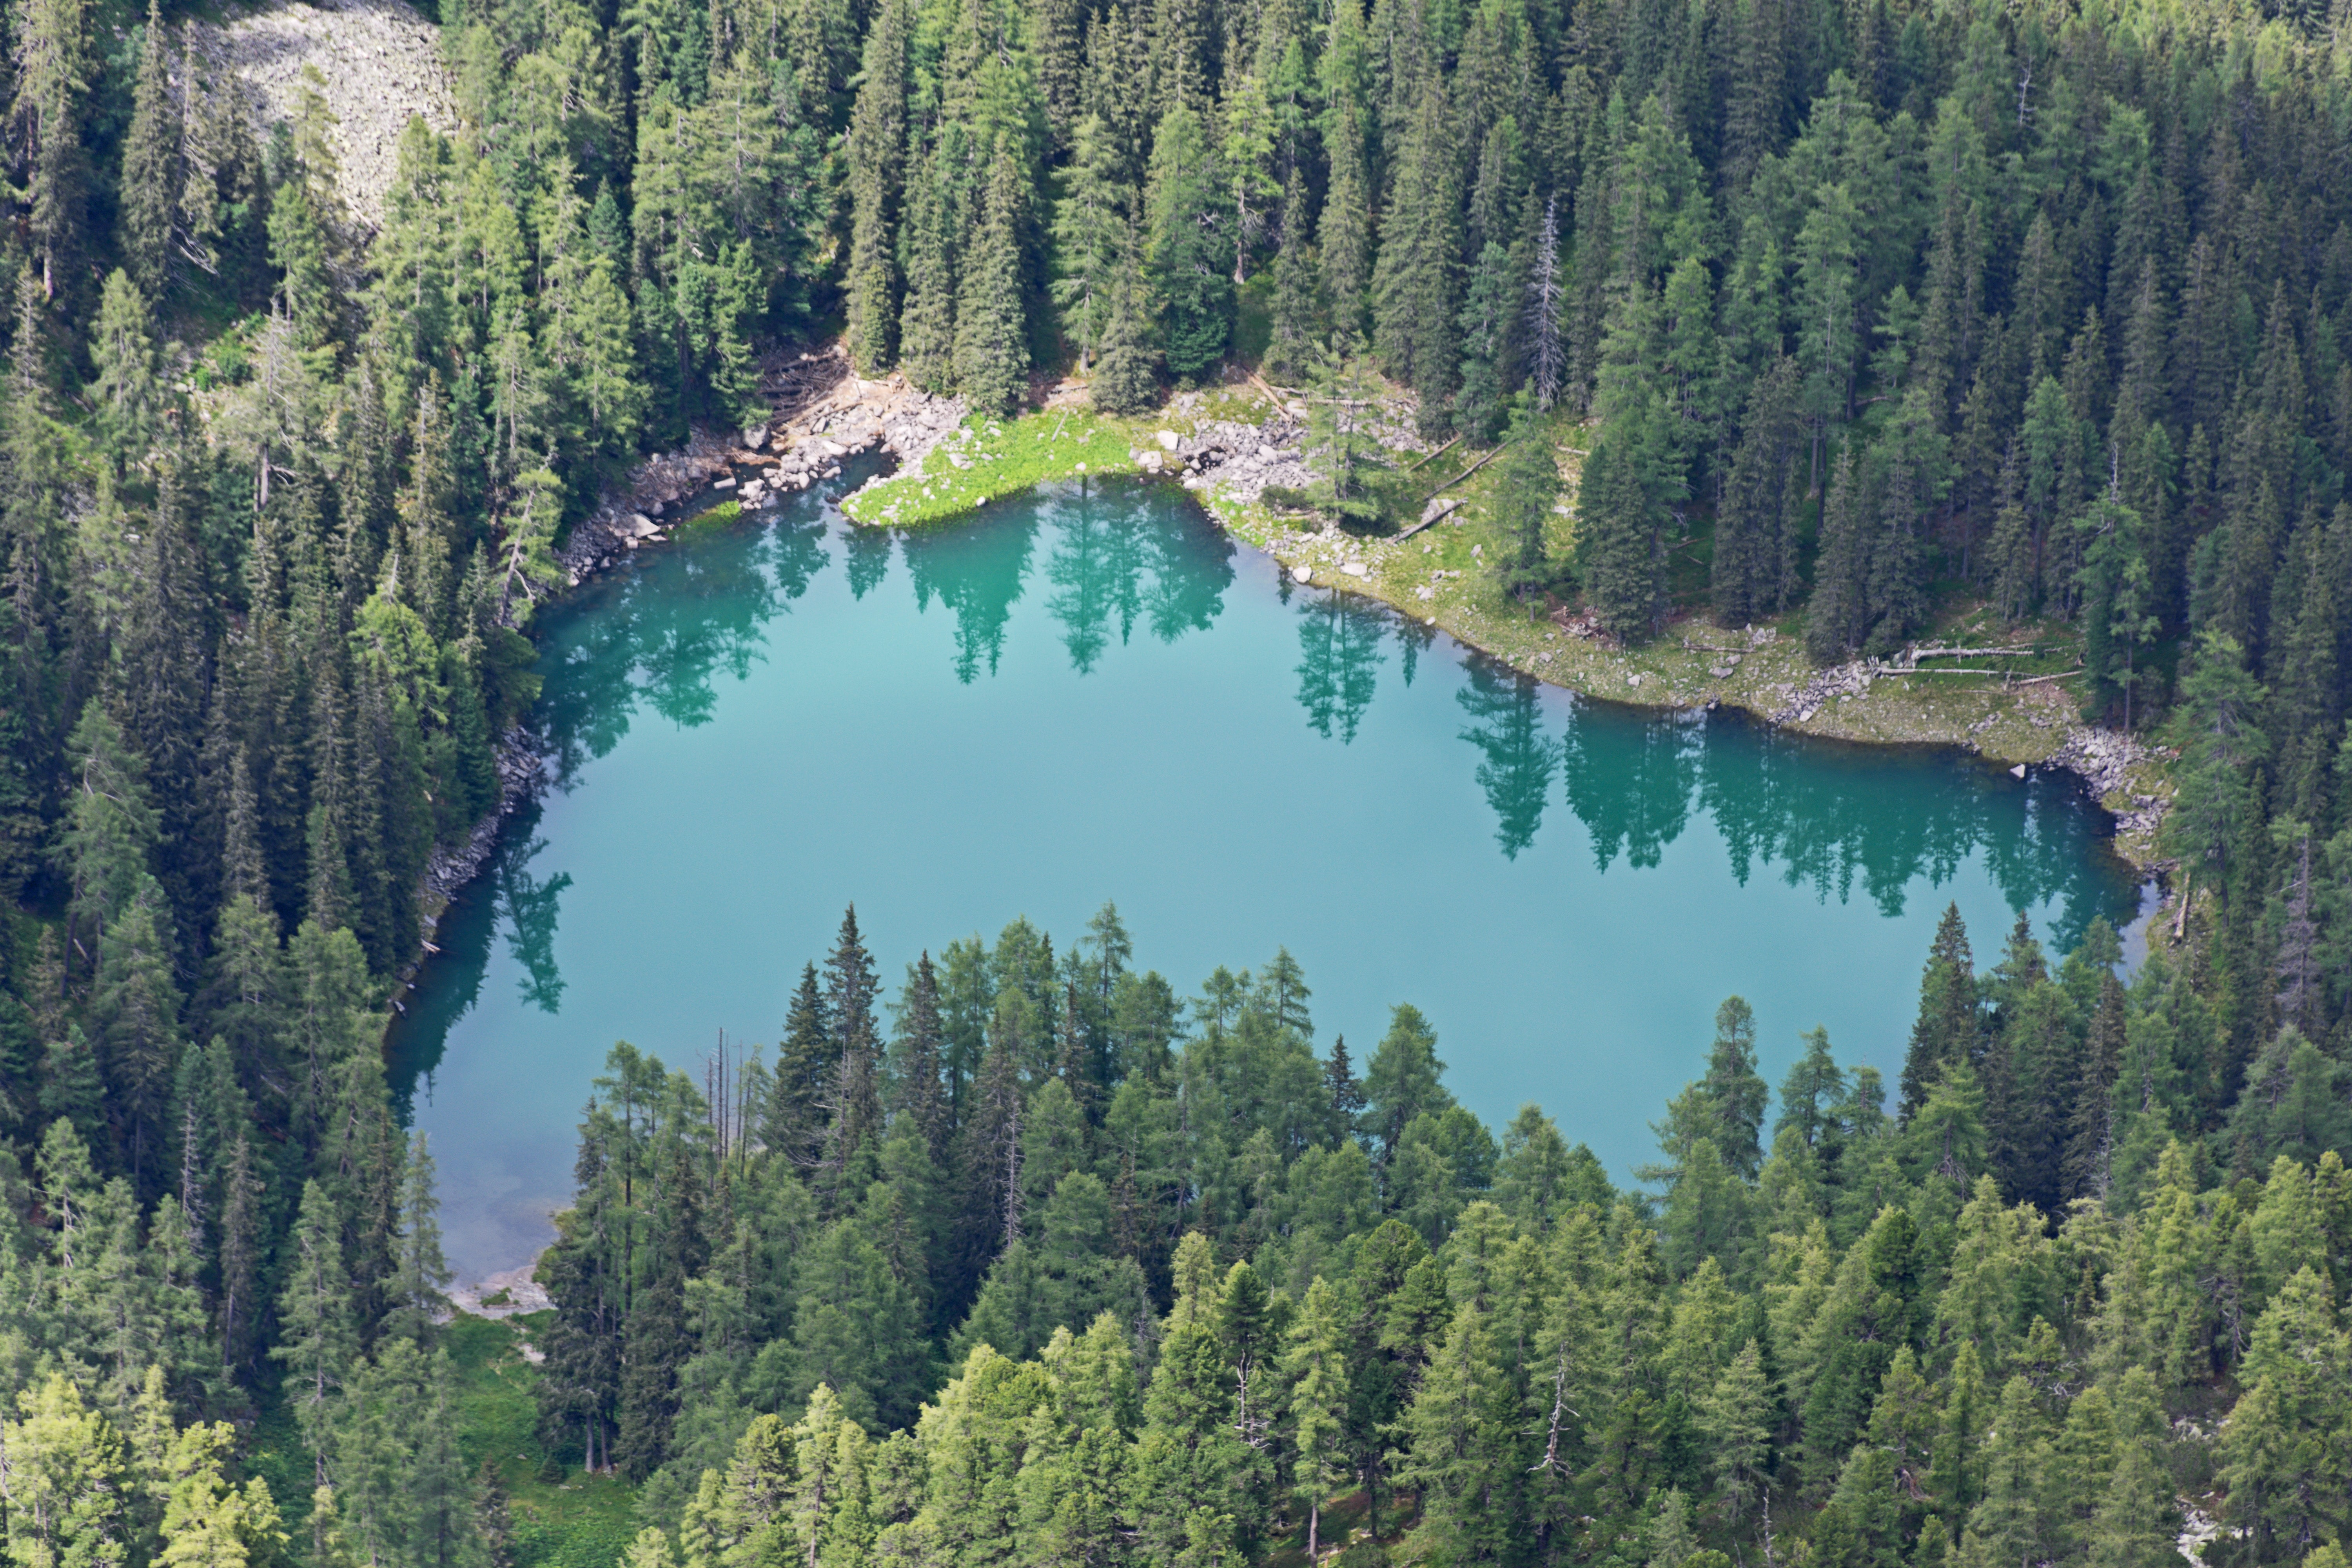 An aerial photo of a small turquoise lake encircled by an evergreen forest